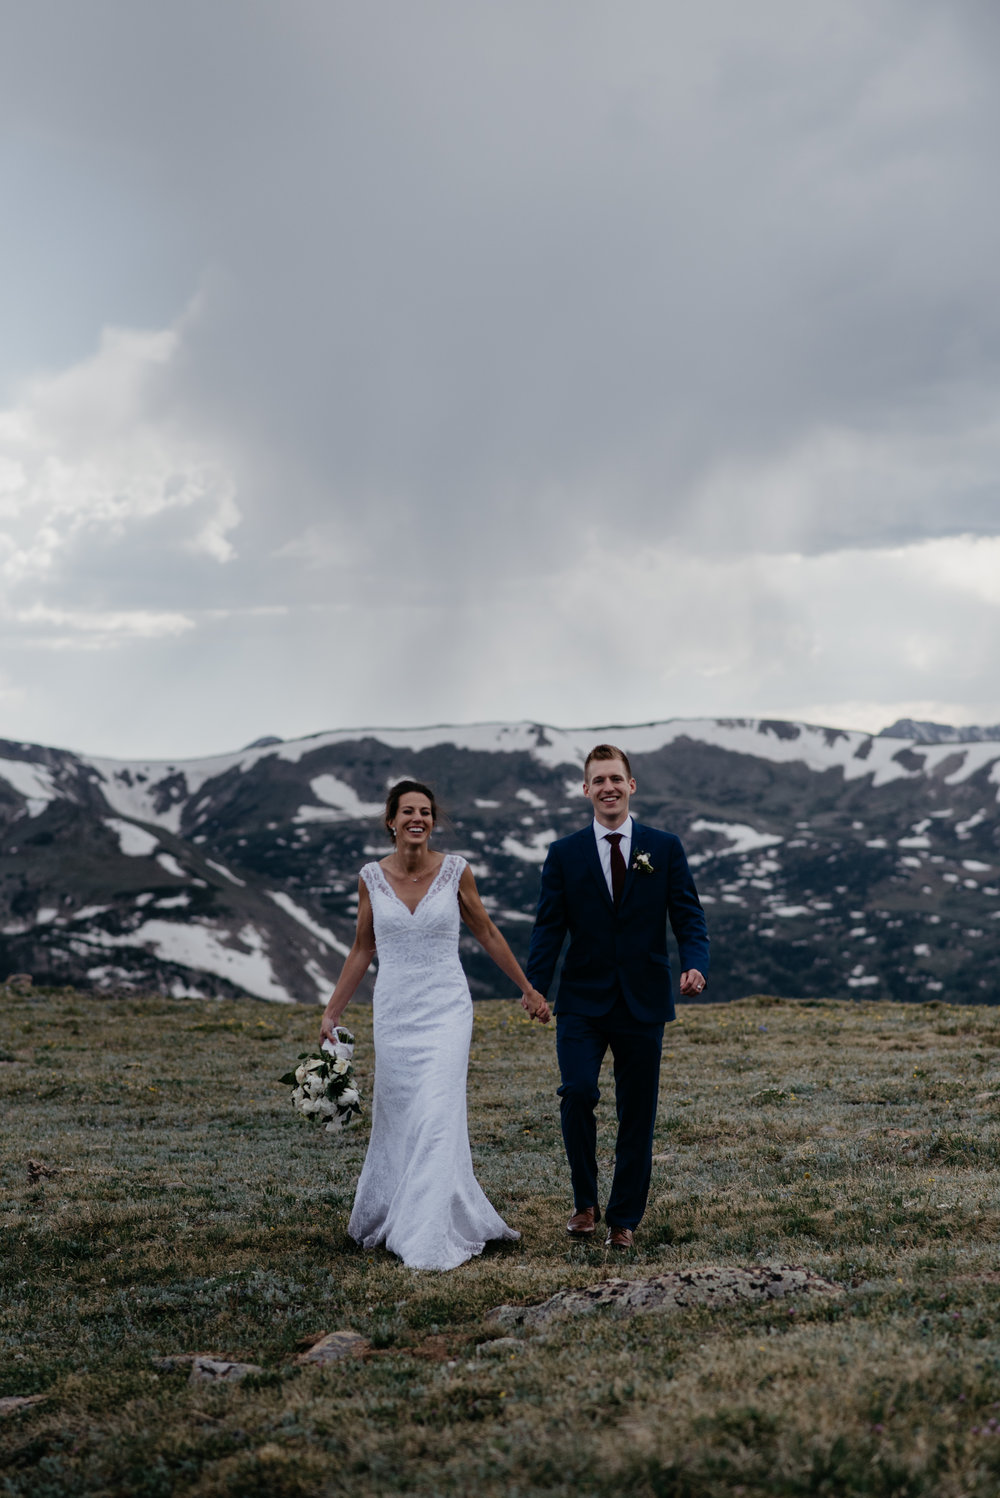 Rocky Mountain National Park adventure elopement at Trail Ridge Road. Colorado elopement photographer.